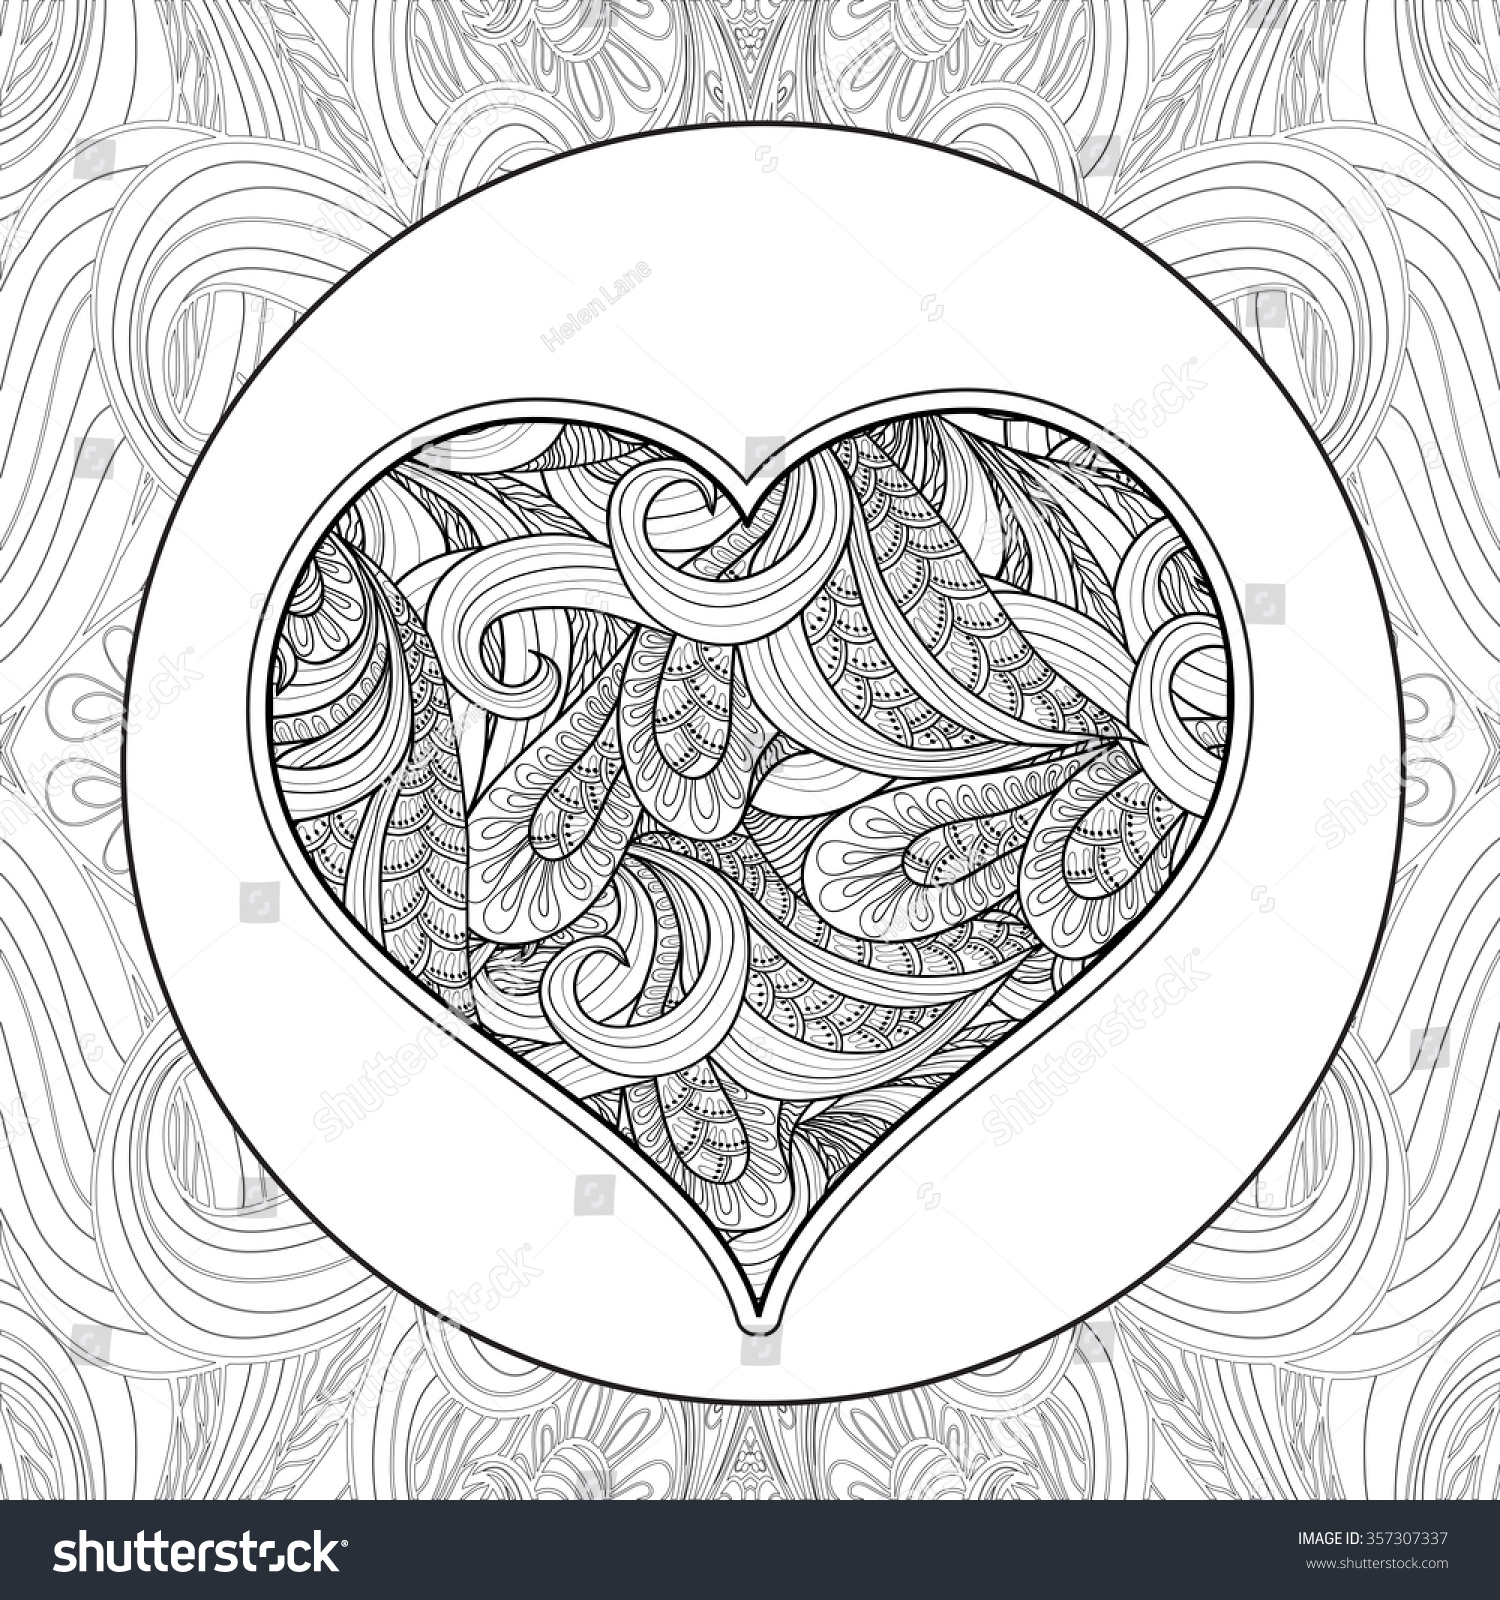 older valentines day coloring pages - photo#47